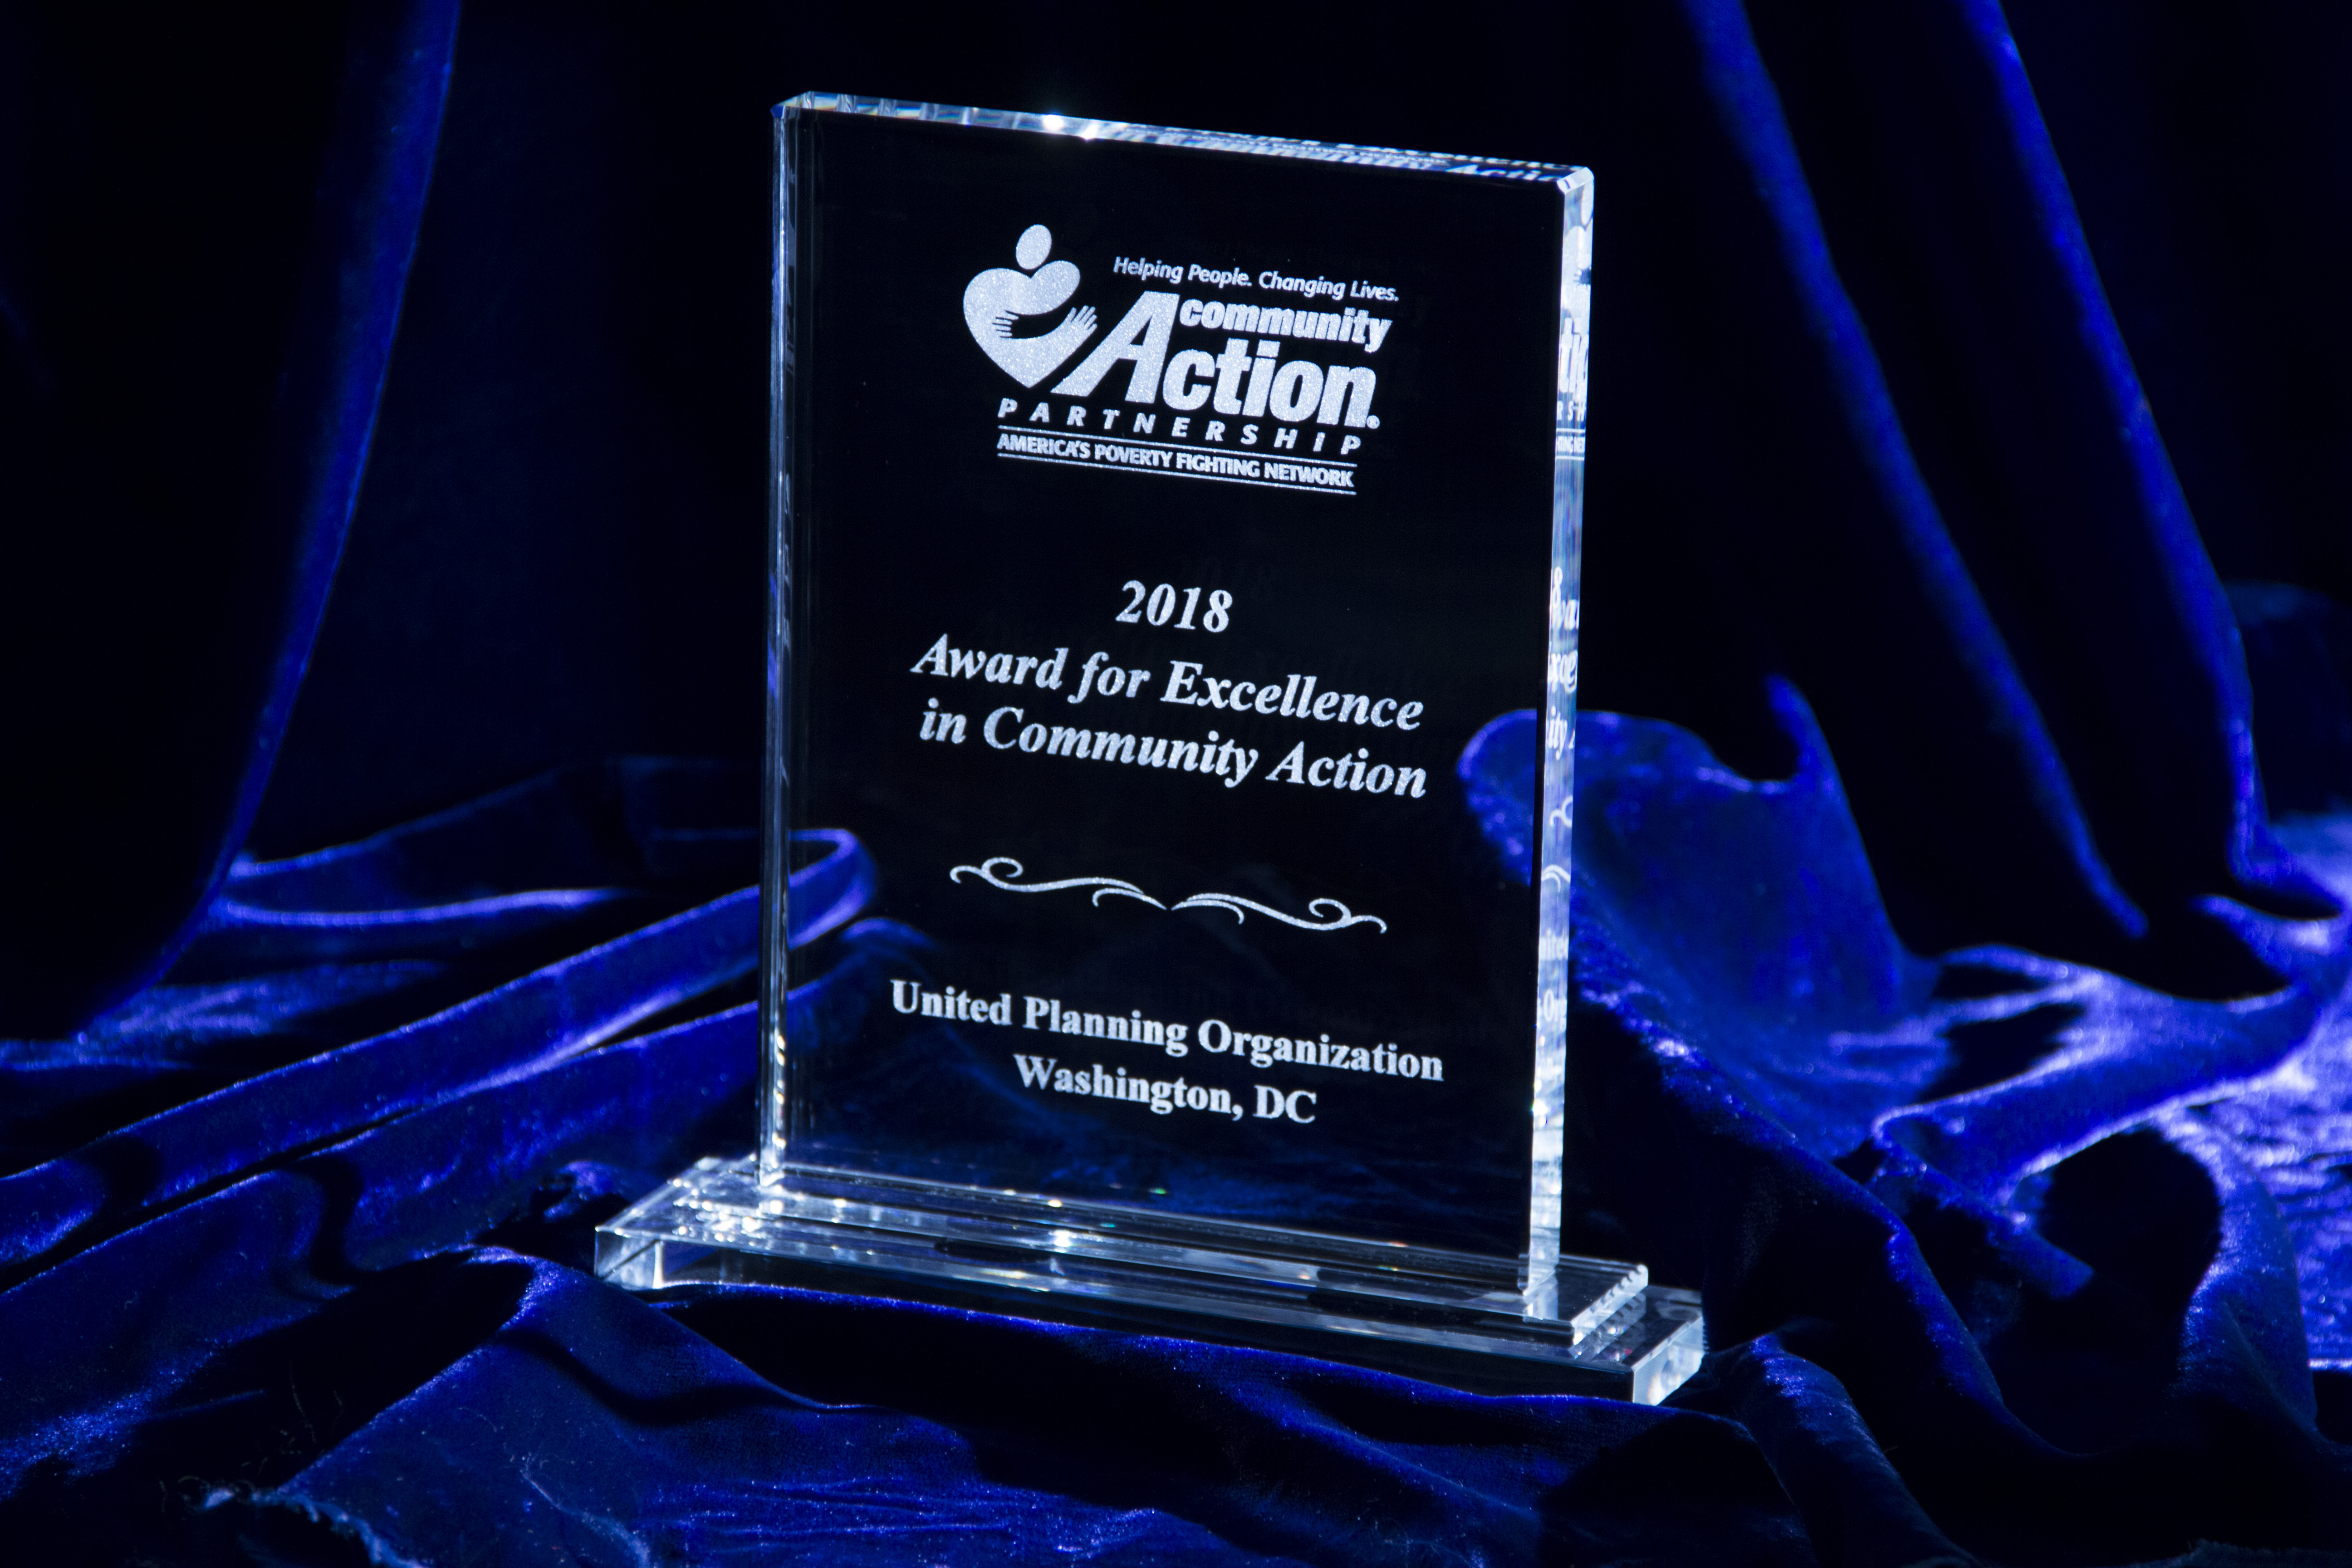 UPO Earns National Award for Excellence